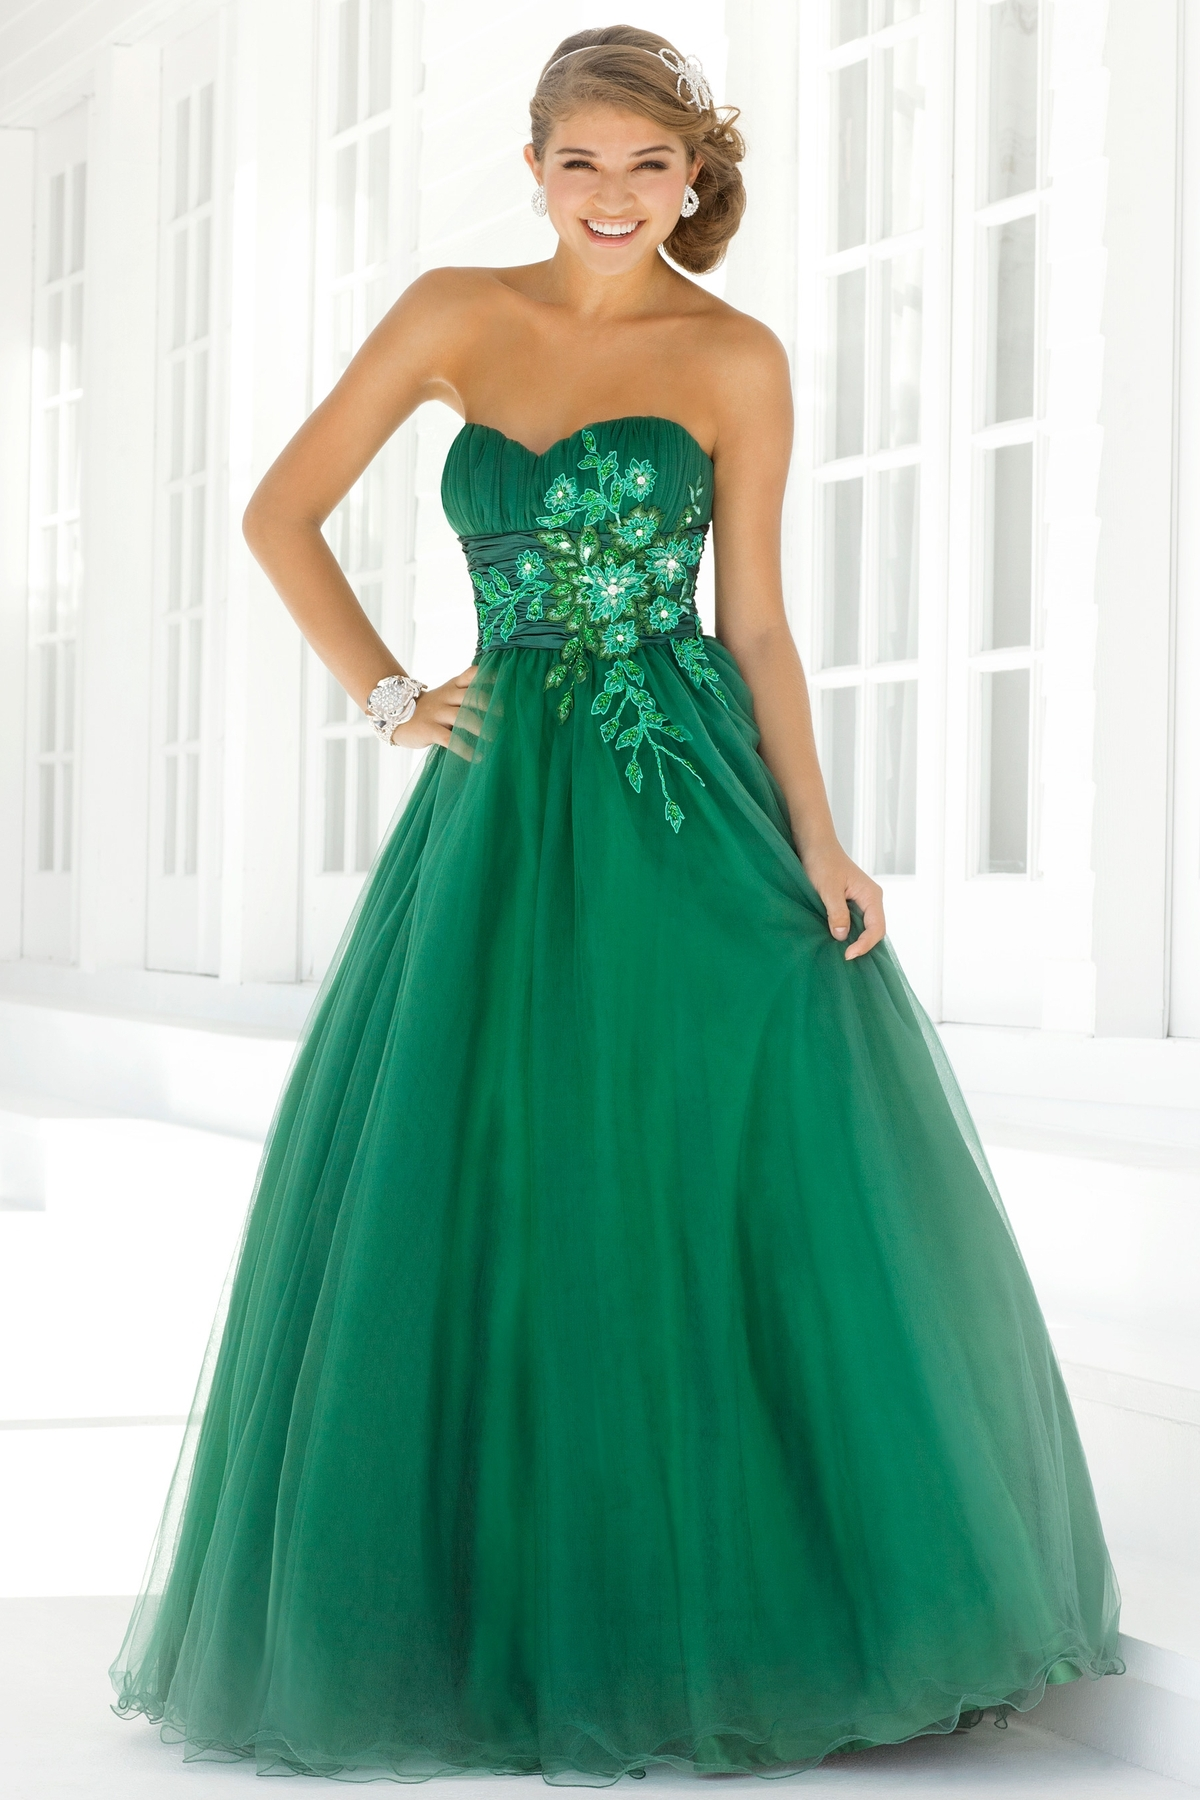 Ball gown prom dresses 2014 - Green Prom Dresses Dressed Up